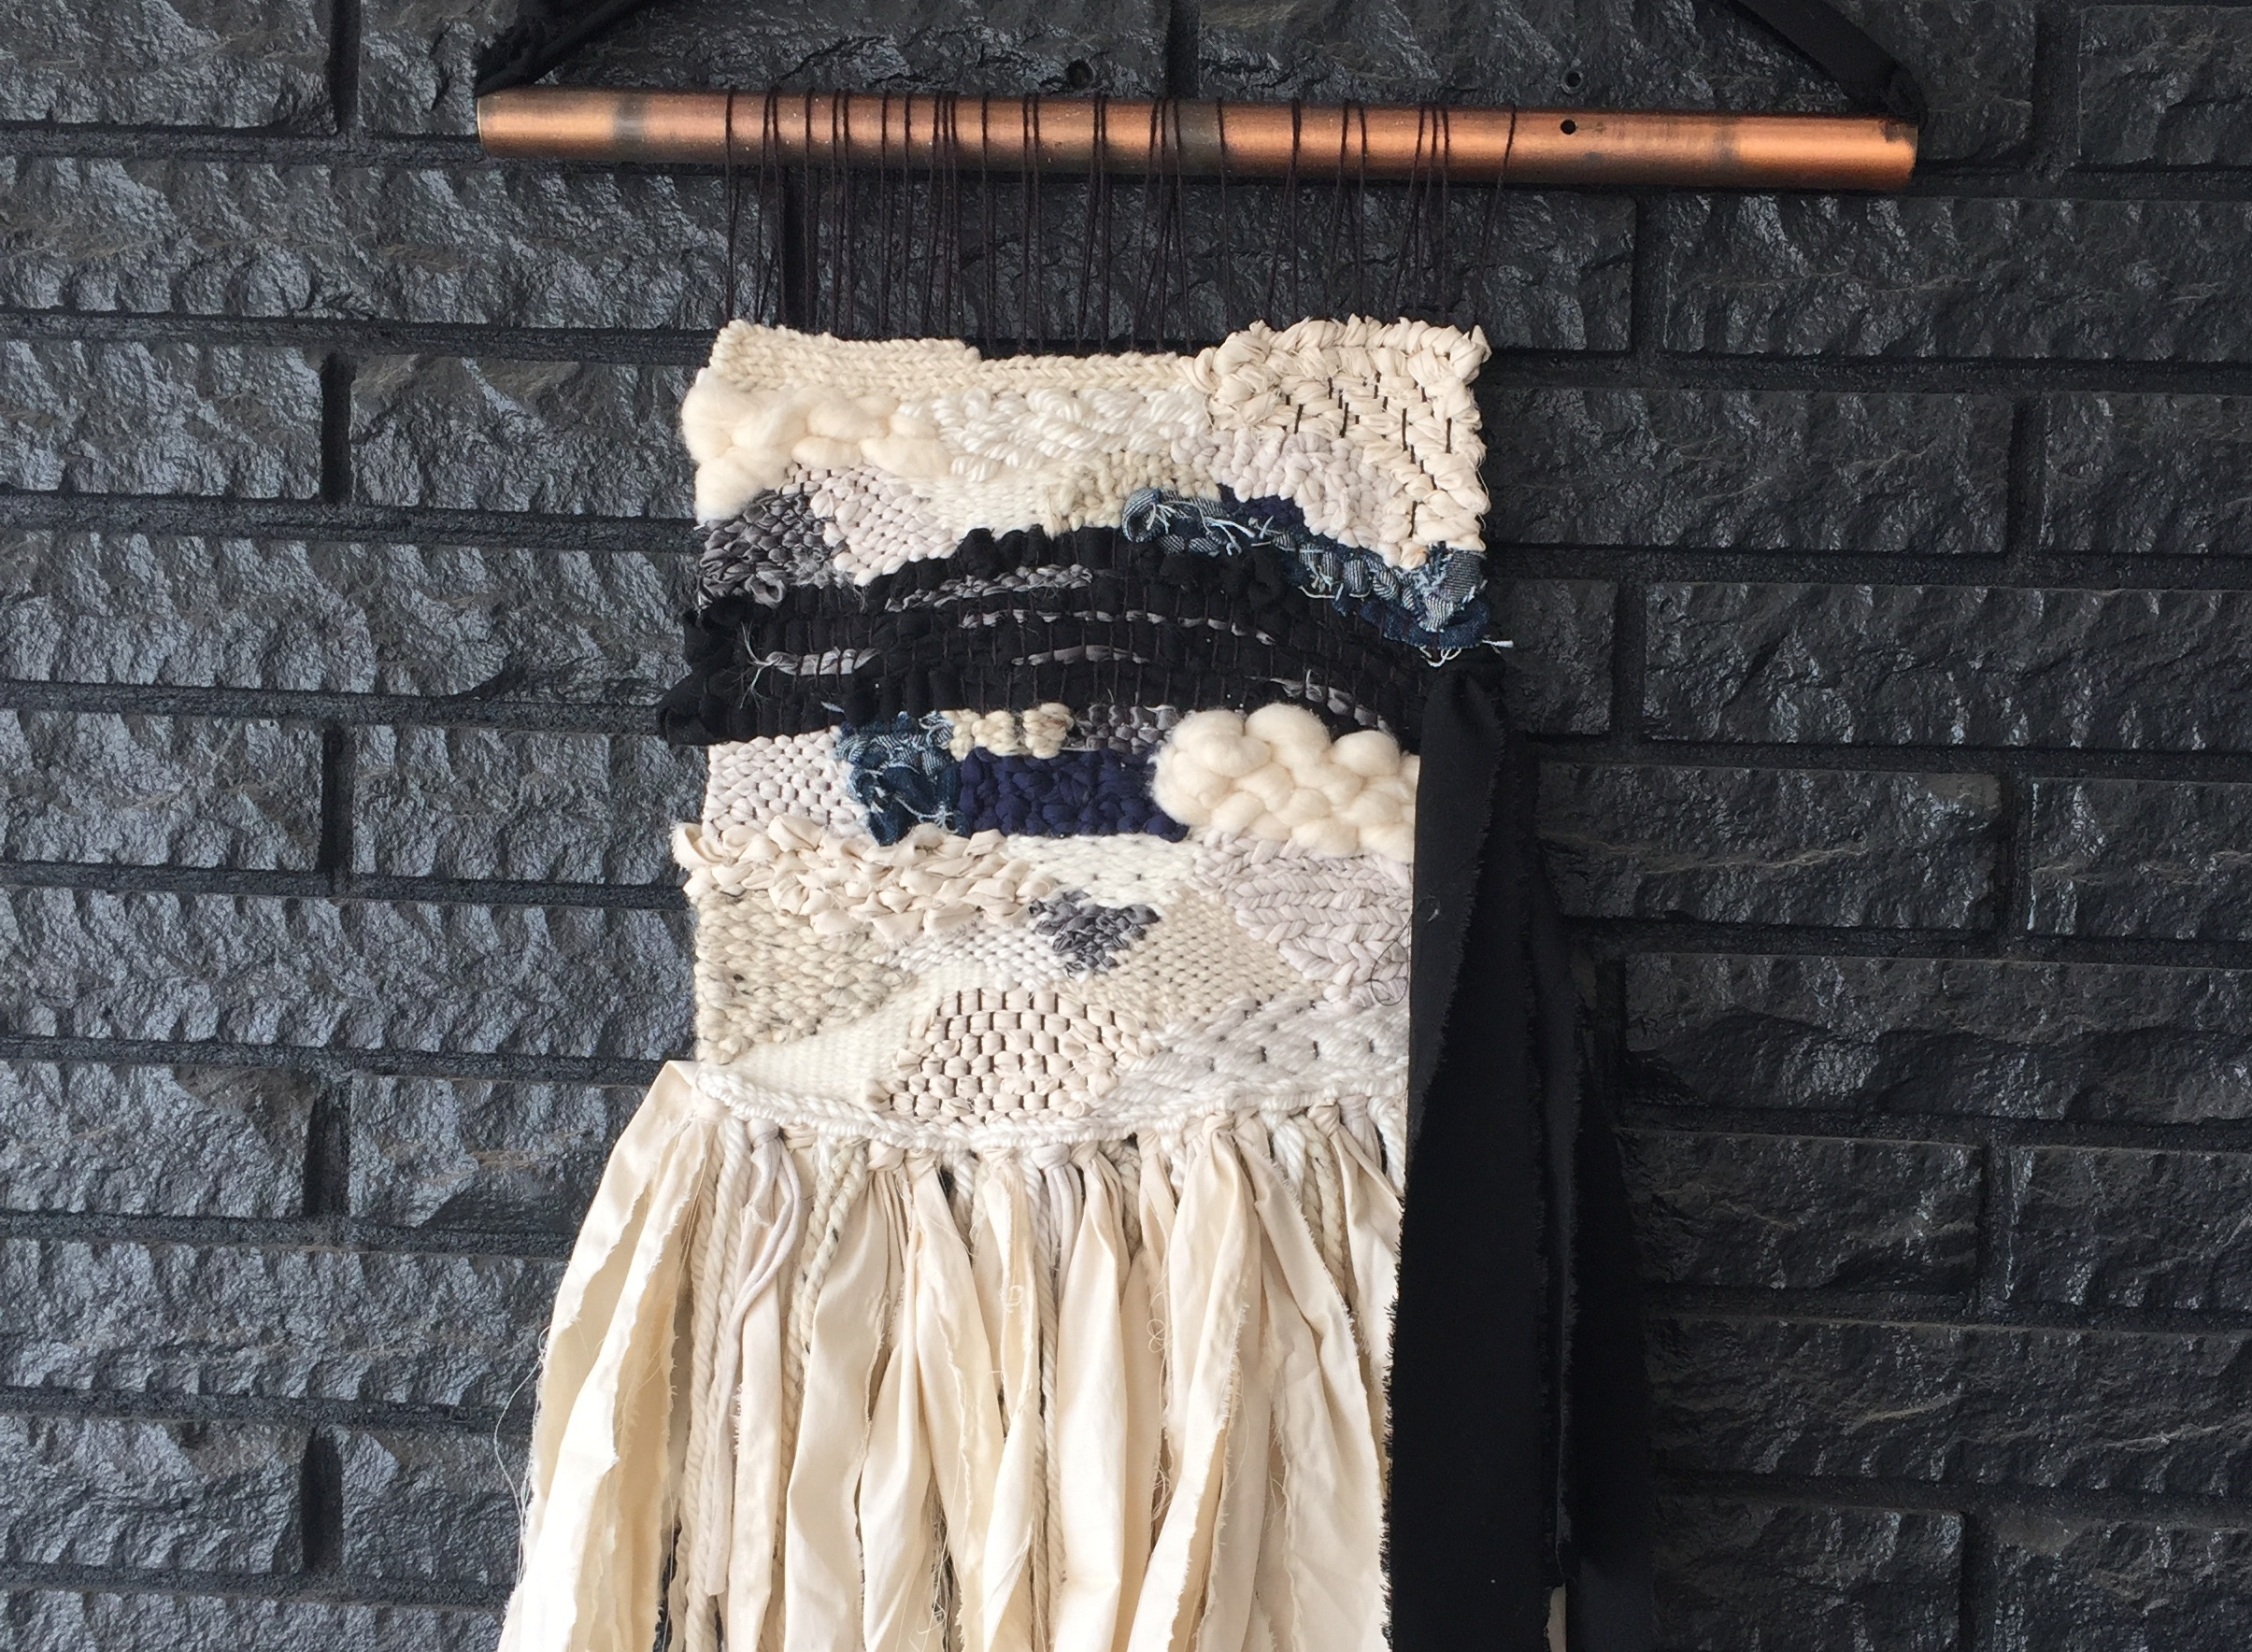 Handwoven tapestry made from recycled materials